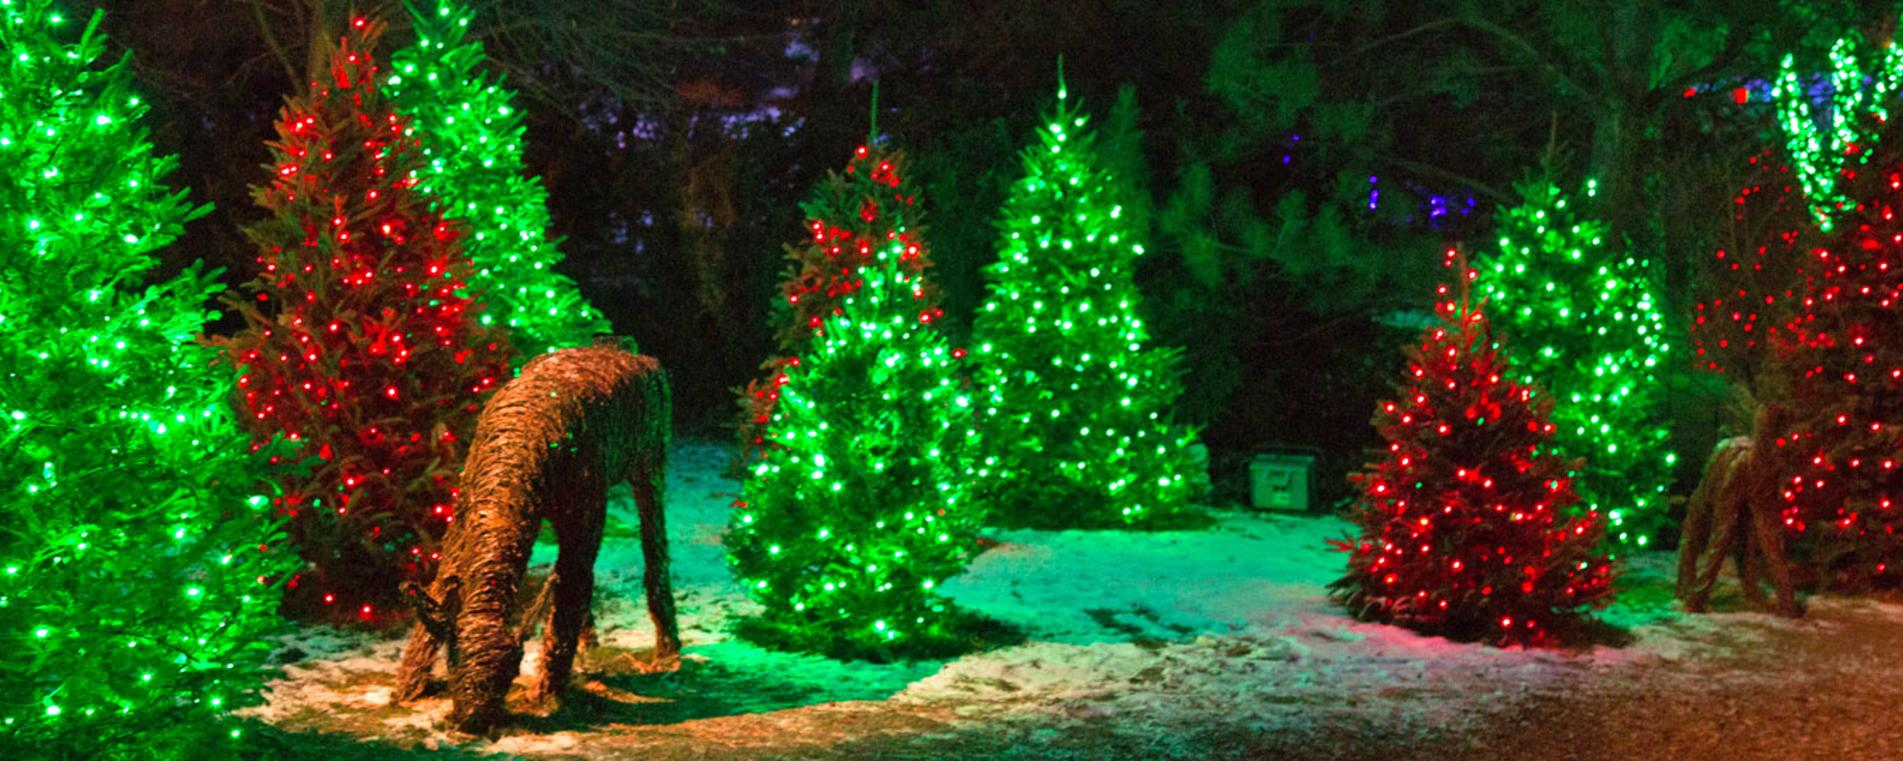 Christmas Lights Utah County 2020 6 Festive Christmas Activities | Explore Utah Valley